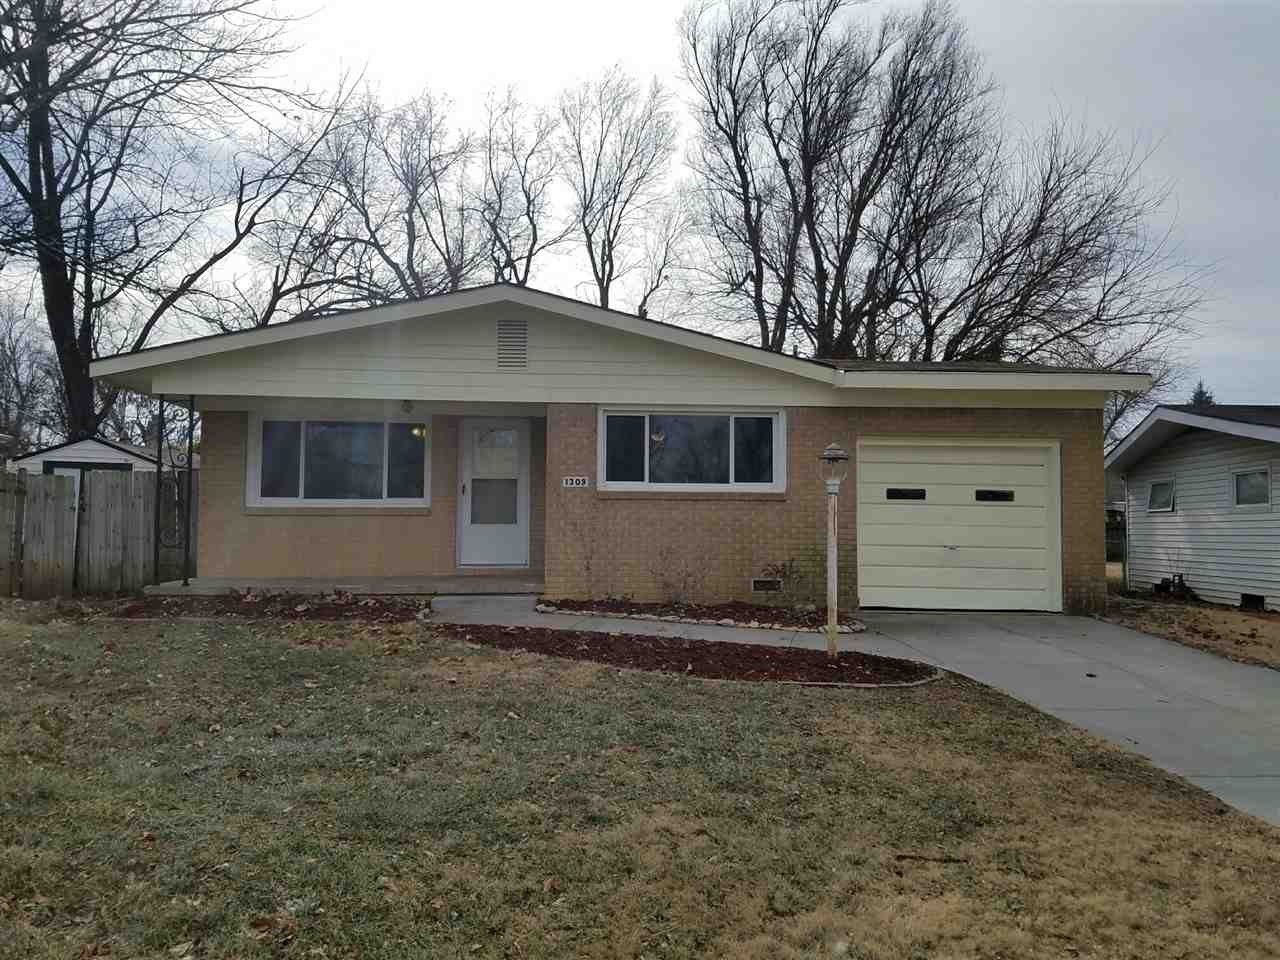 1309 E Beaumont St, Park City, KS 67219